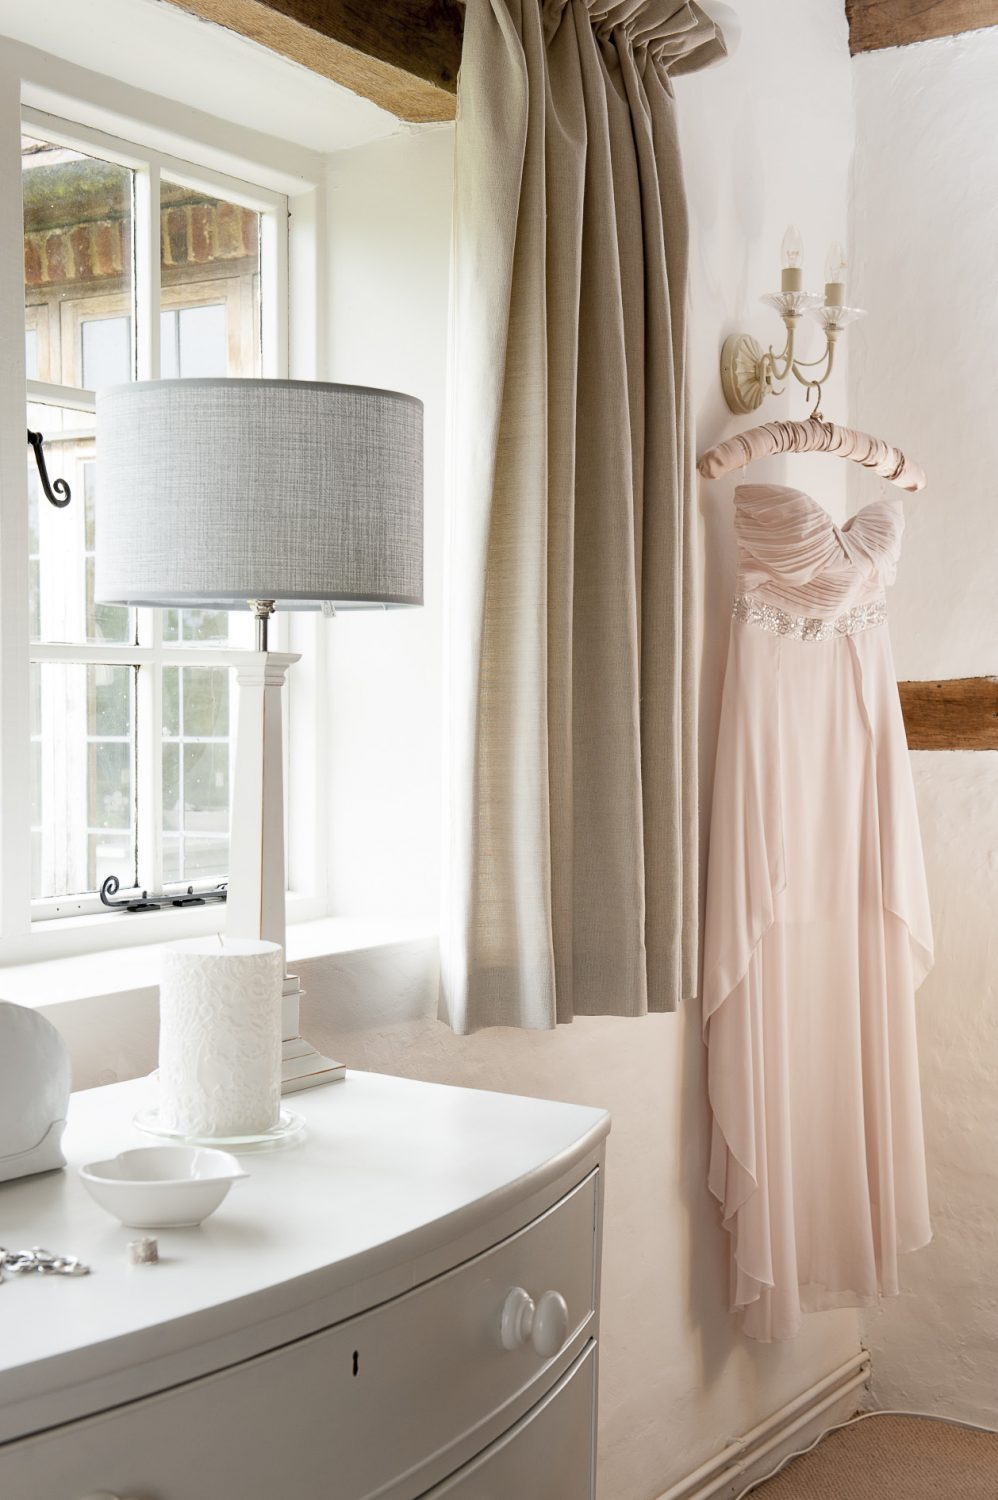 Décor in the bedroom has been kept, pale, pretty and feminine – whilst steering clear of twee country styling